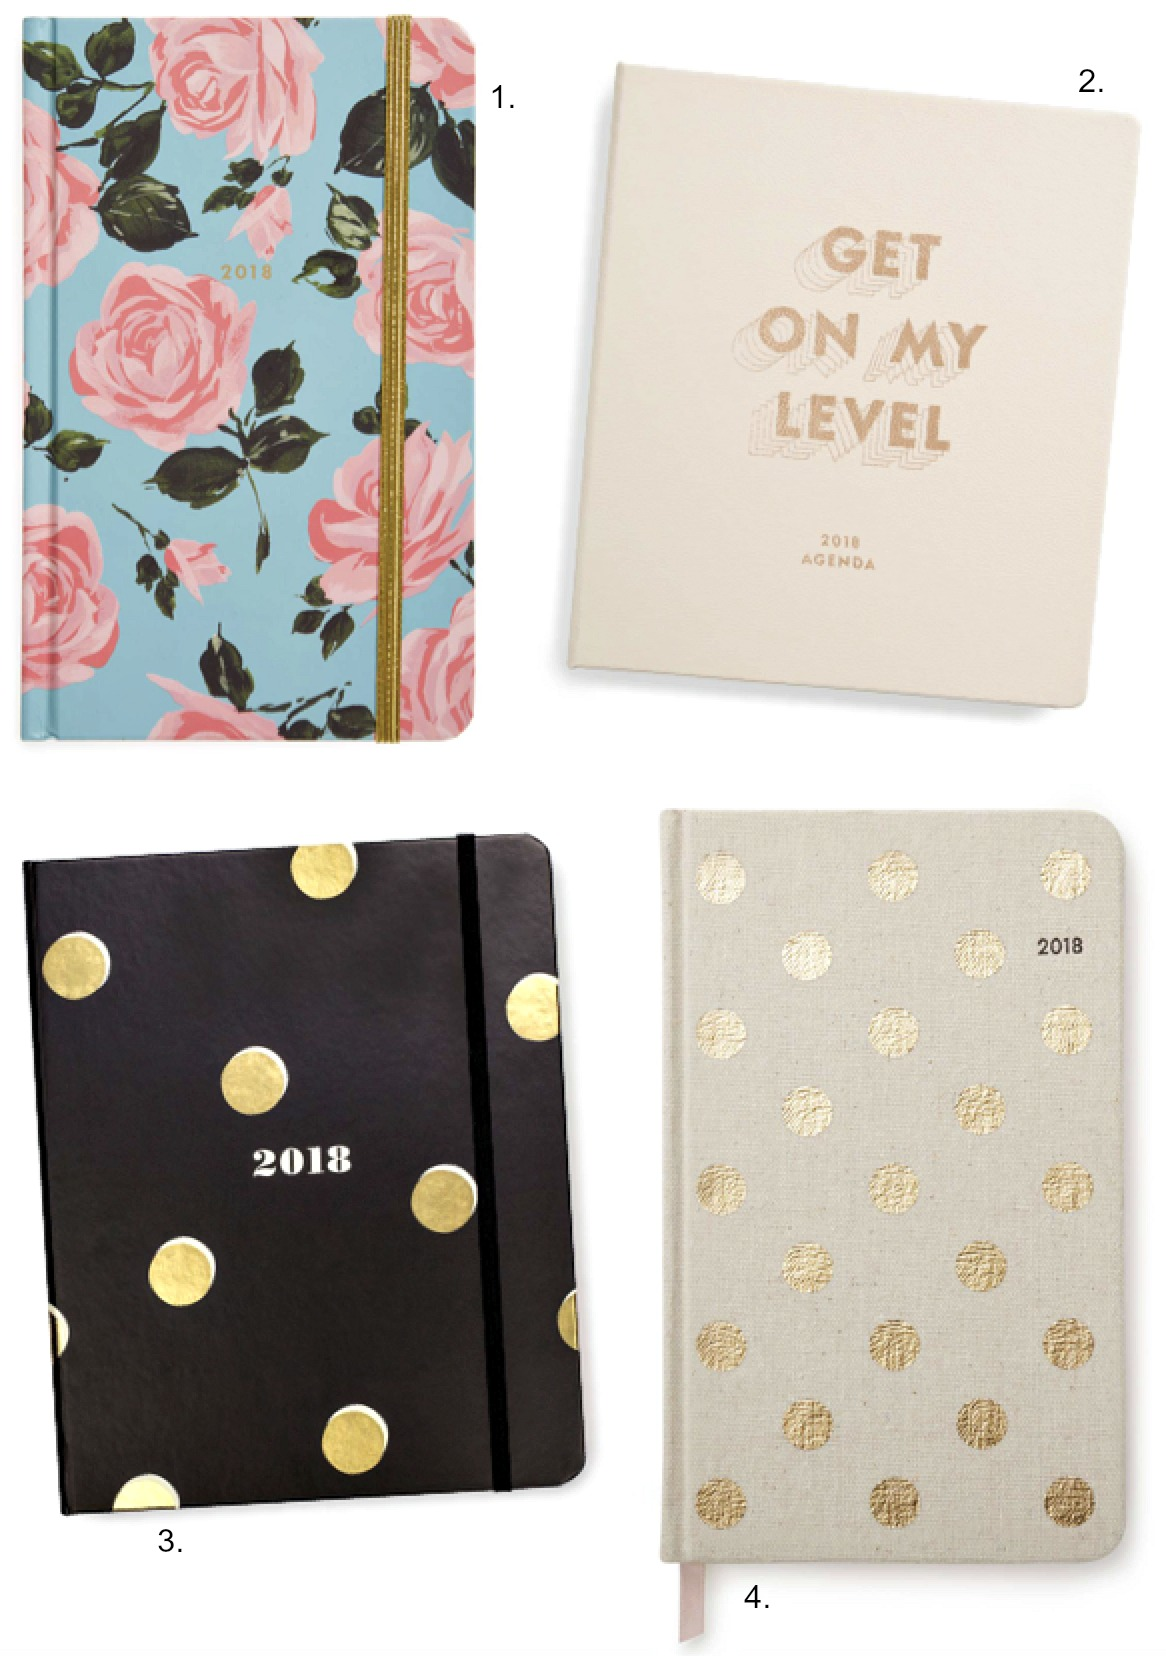 best 2018 planners ban.do agenda kate spade polka dot diary